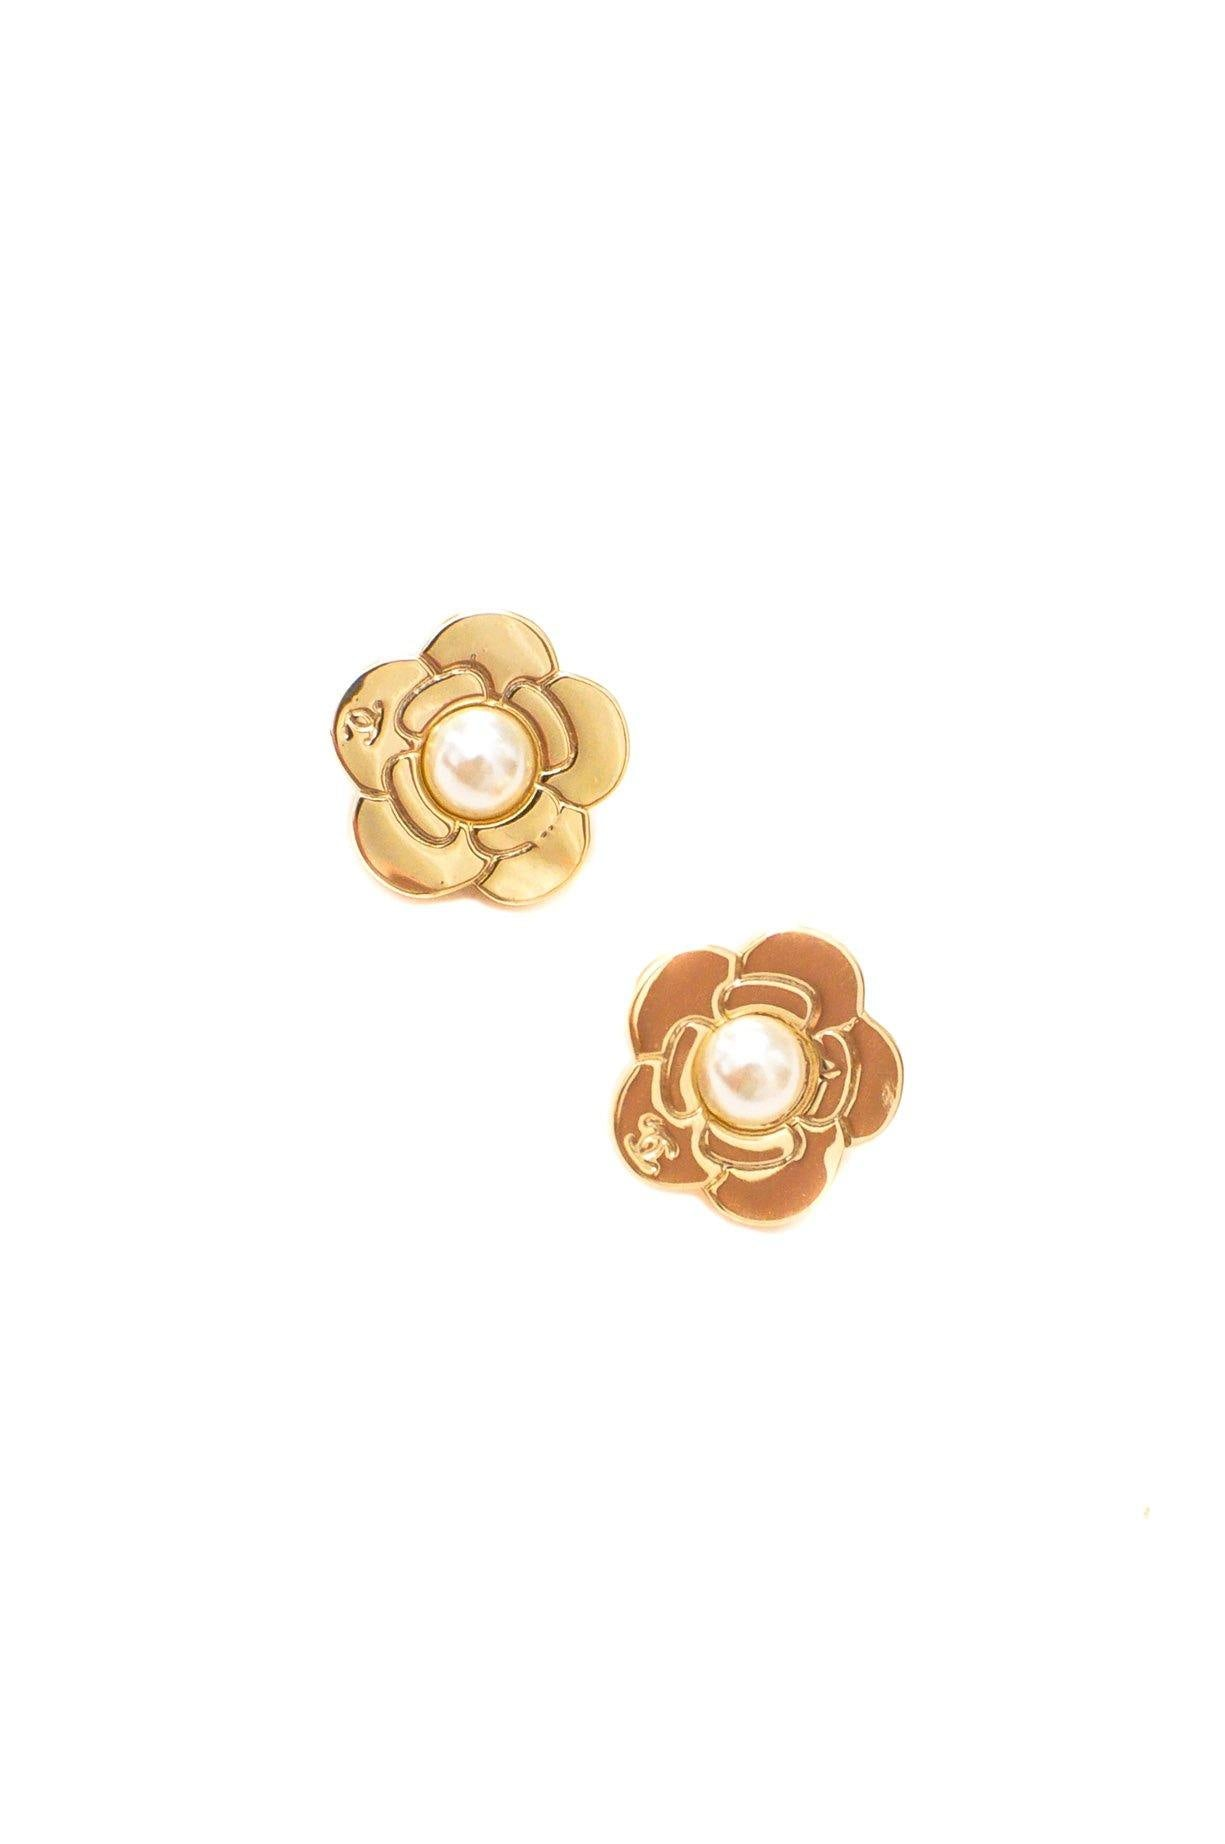 Chanel Camellia Floral Pierced Earrings